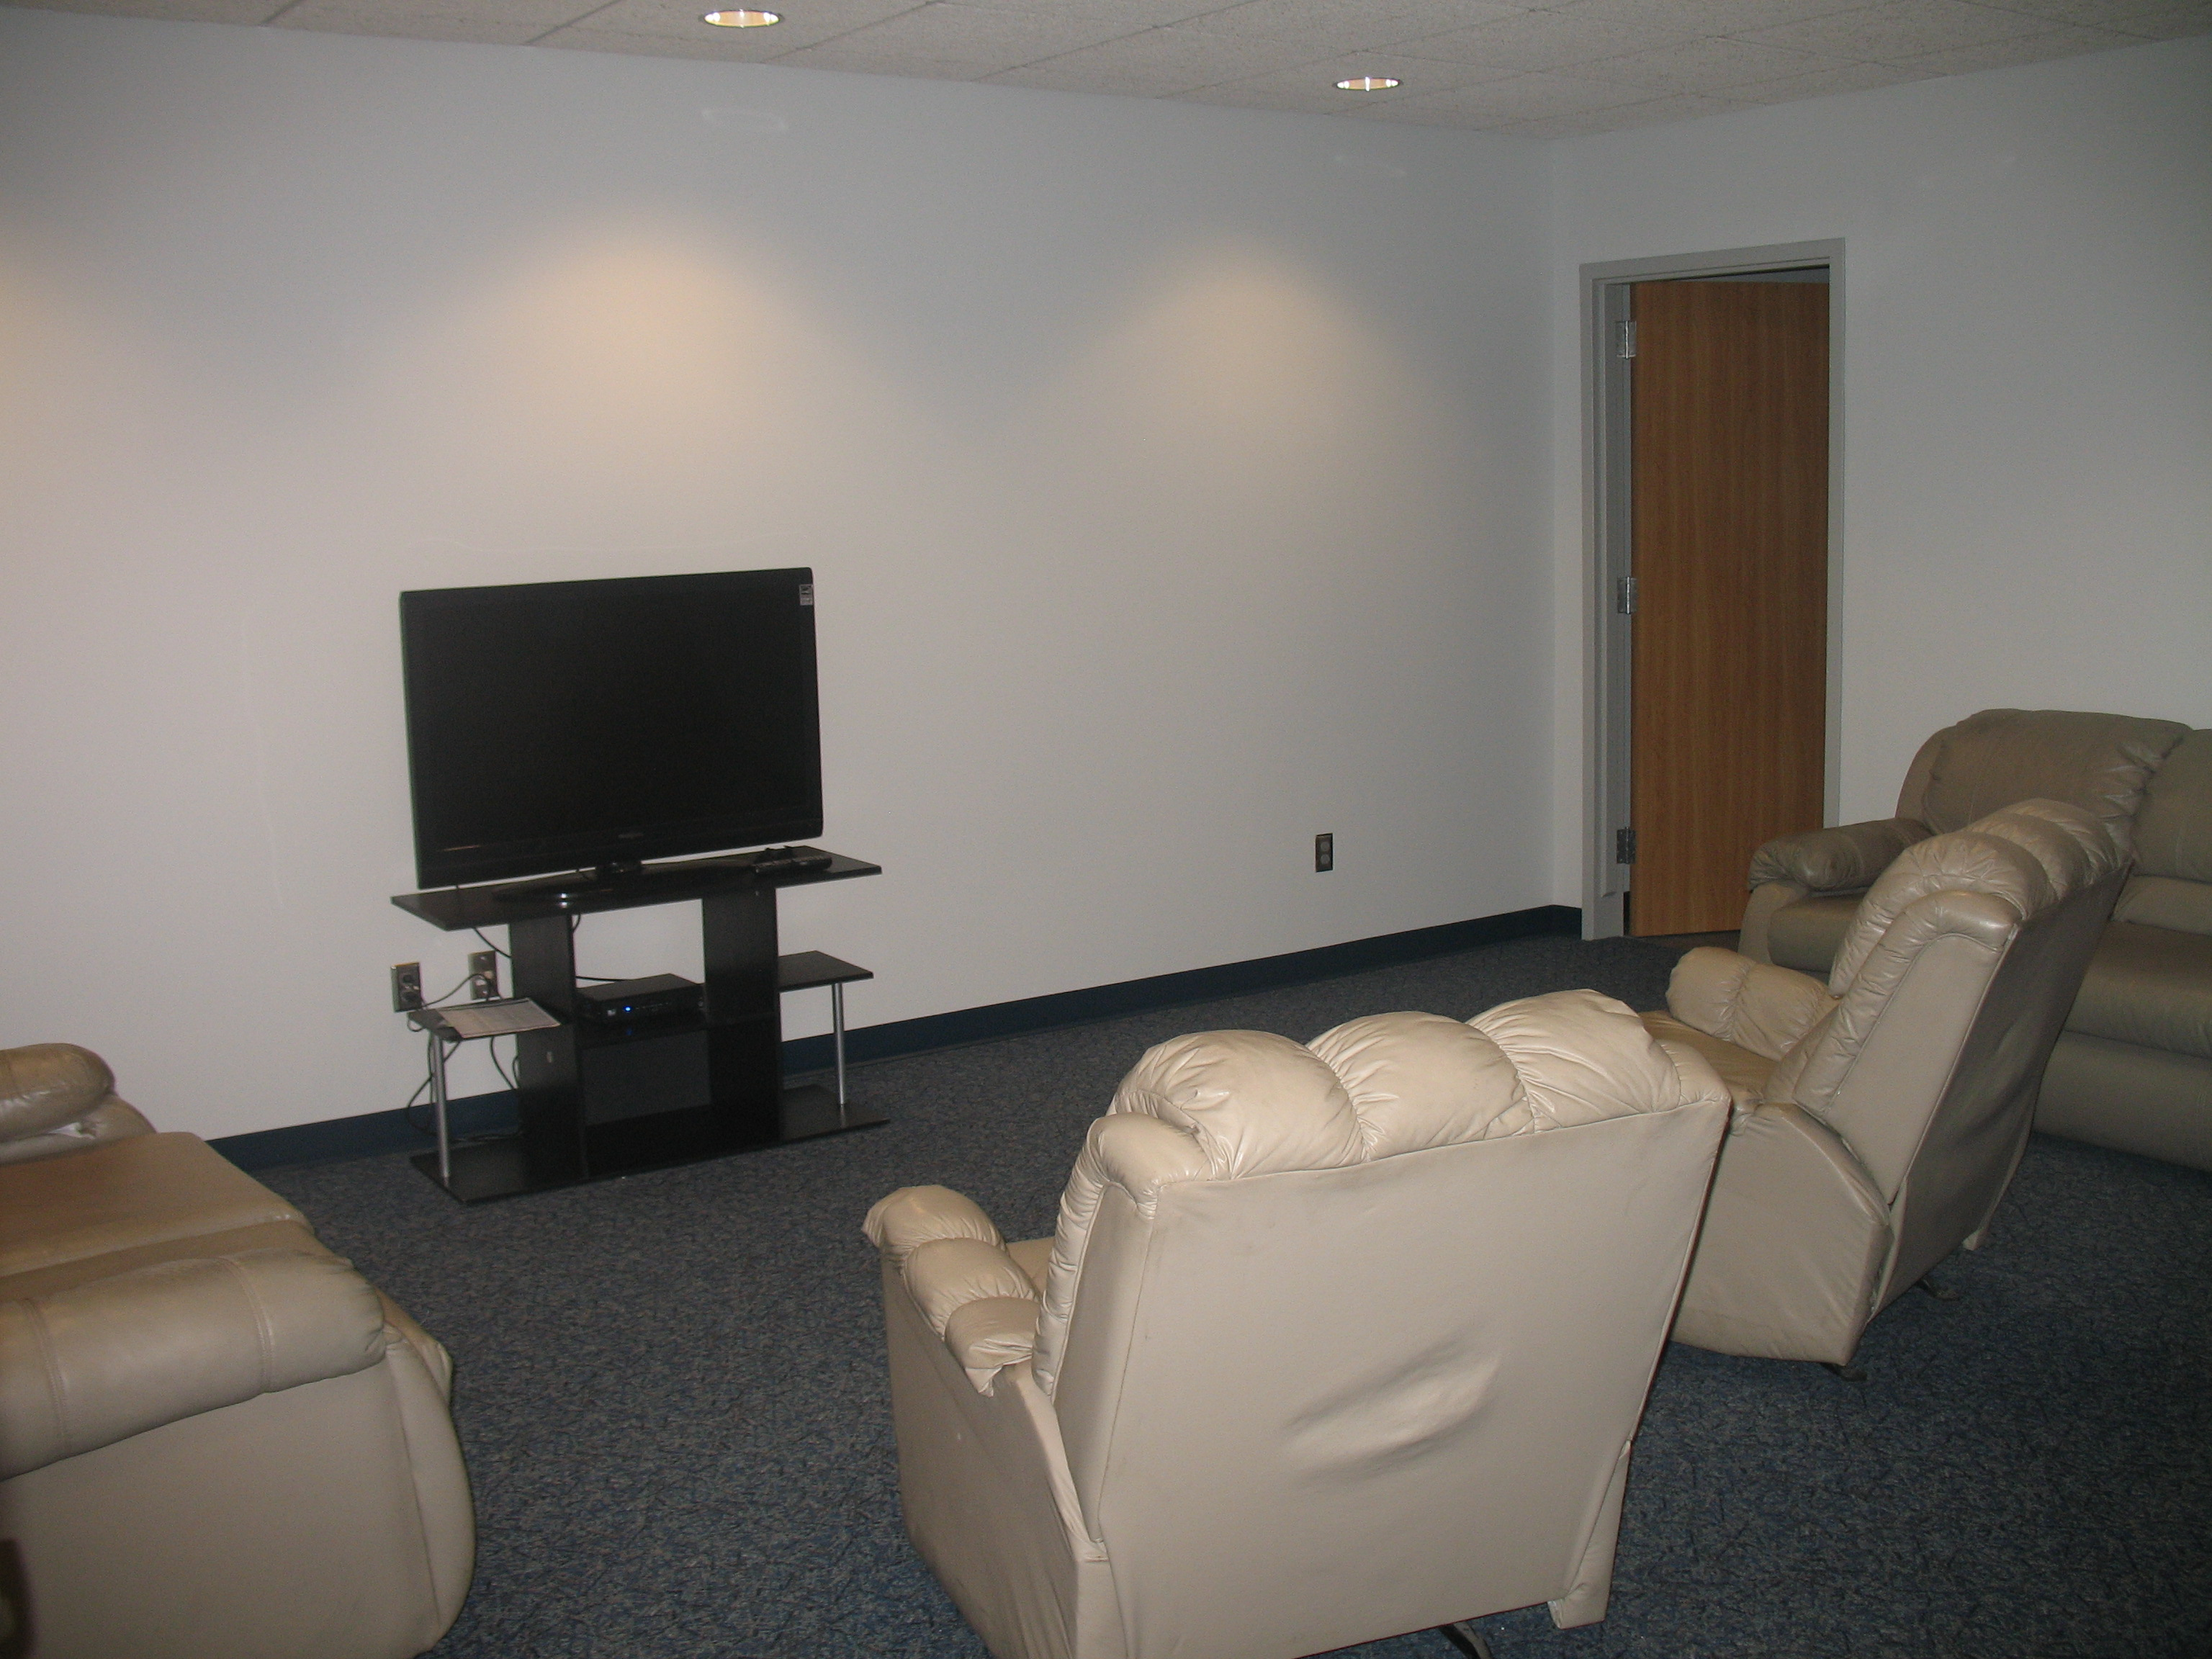 council-bluffs-airport-terminal-lounge